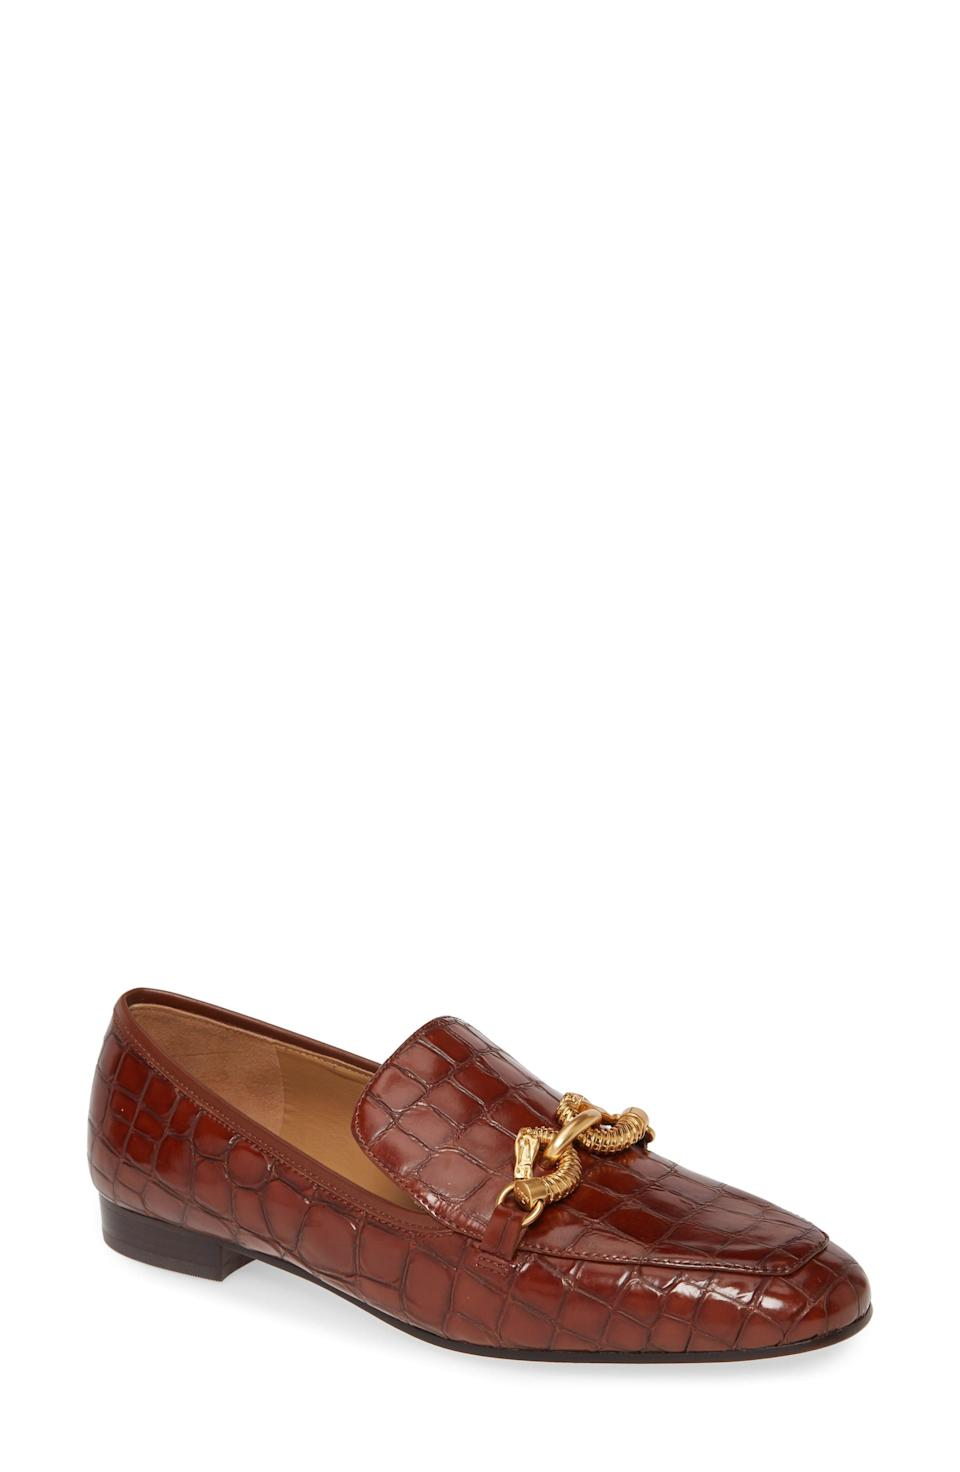 "<p><strong>Tory Burch </strong></p><p>nordstrom.com</p><p><strong>$348.00</strong></p><p><a href=""https://go.redirectingat.com?id=74968X1596630&url=https%3A%2F%2Fshop.nordstrom.com%2Fs%2Ftory-burch-jessa-loafer-women%2F5376062&sref=https%3A%2F%2Fwww.redbookmag.com%2Ffashion%2Fg35481981%2Fbest-loafers-for-women%2F"" rel=""nofollow noopener"" target=""_blank"" data-ylk=""slk:Shop Now"" class=""link rapid-noclick-resp"">Shop Now</a></p><p>Few shoes are quite as sophisticated as this Tory Burch pair. Wear them with camel-colored pants and an earth-toned chunky sweater to fully lean into the Upper East Side aesthetic. </p>"